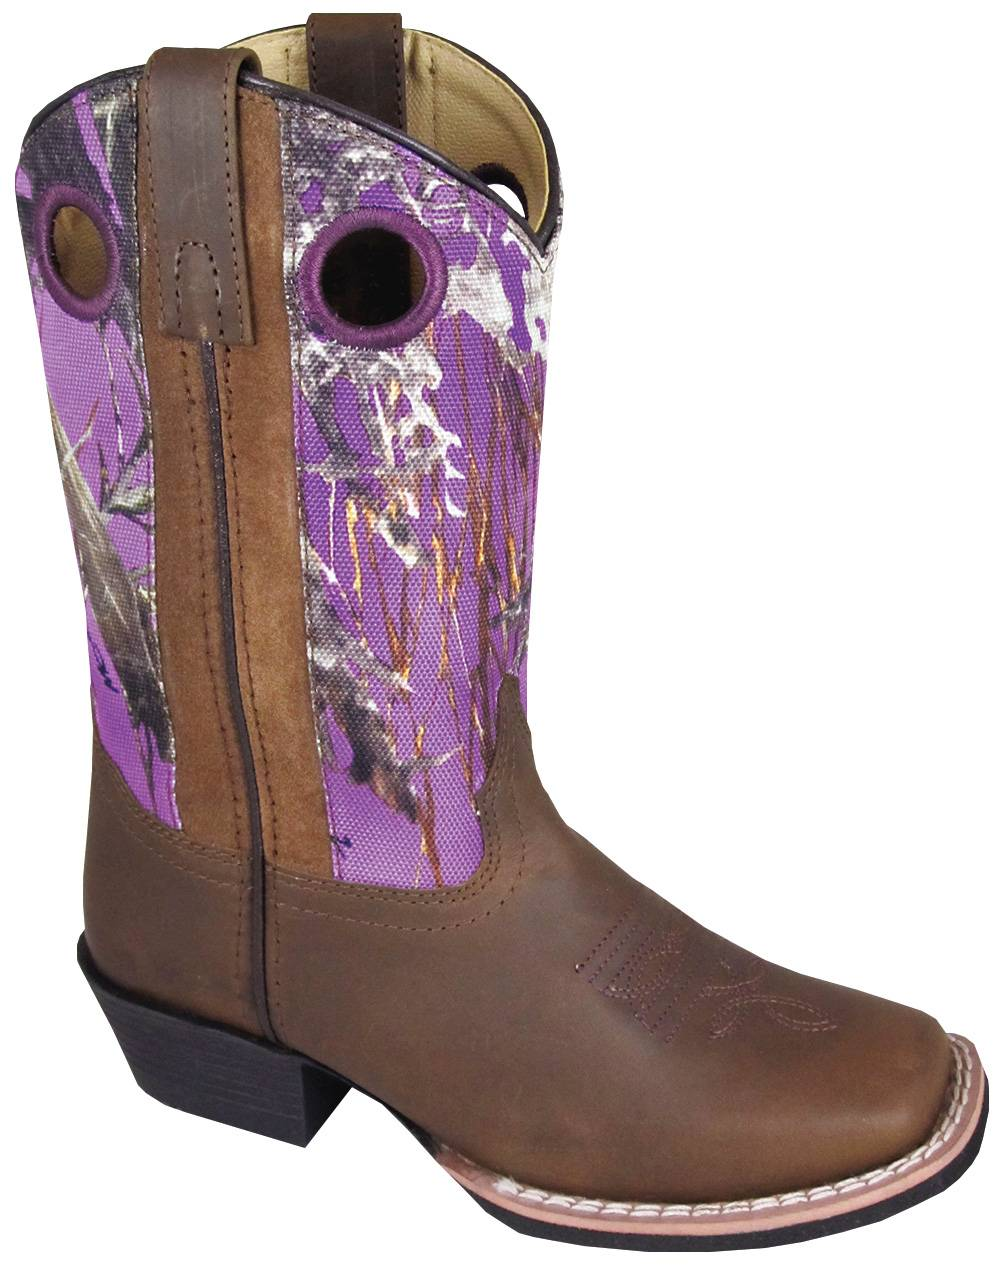 Smoky Mountain Mesa Square Toe Boots - Kids, Brown/Purple Camo